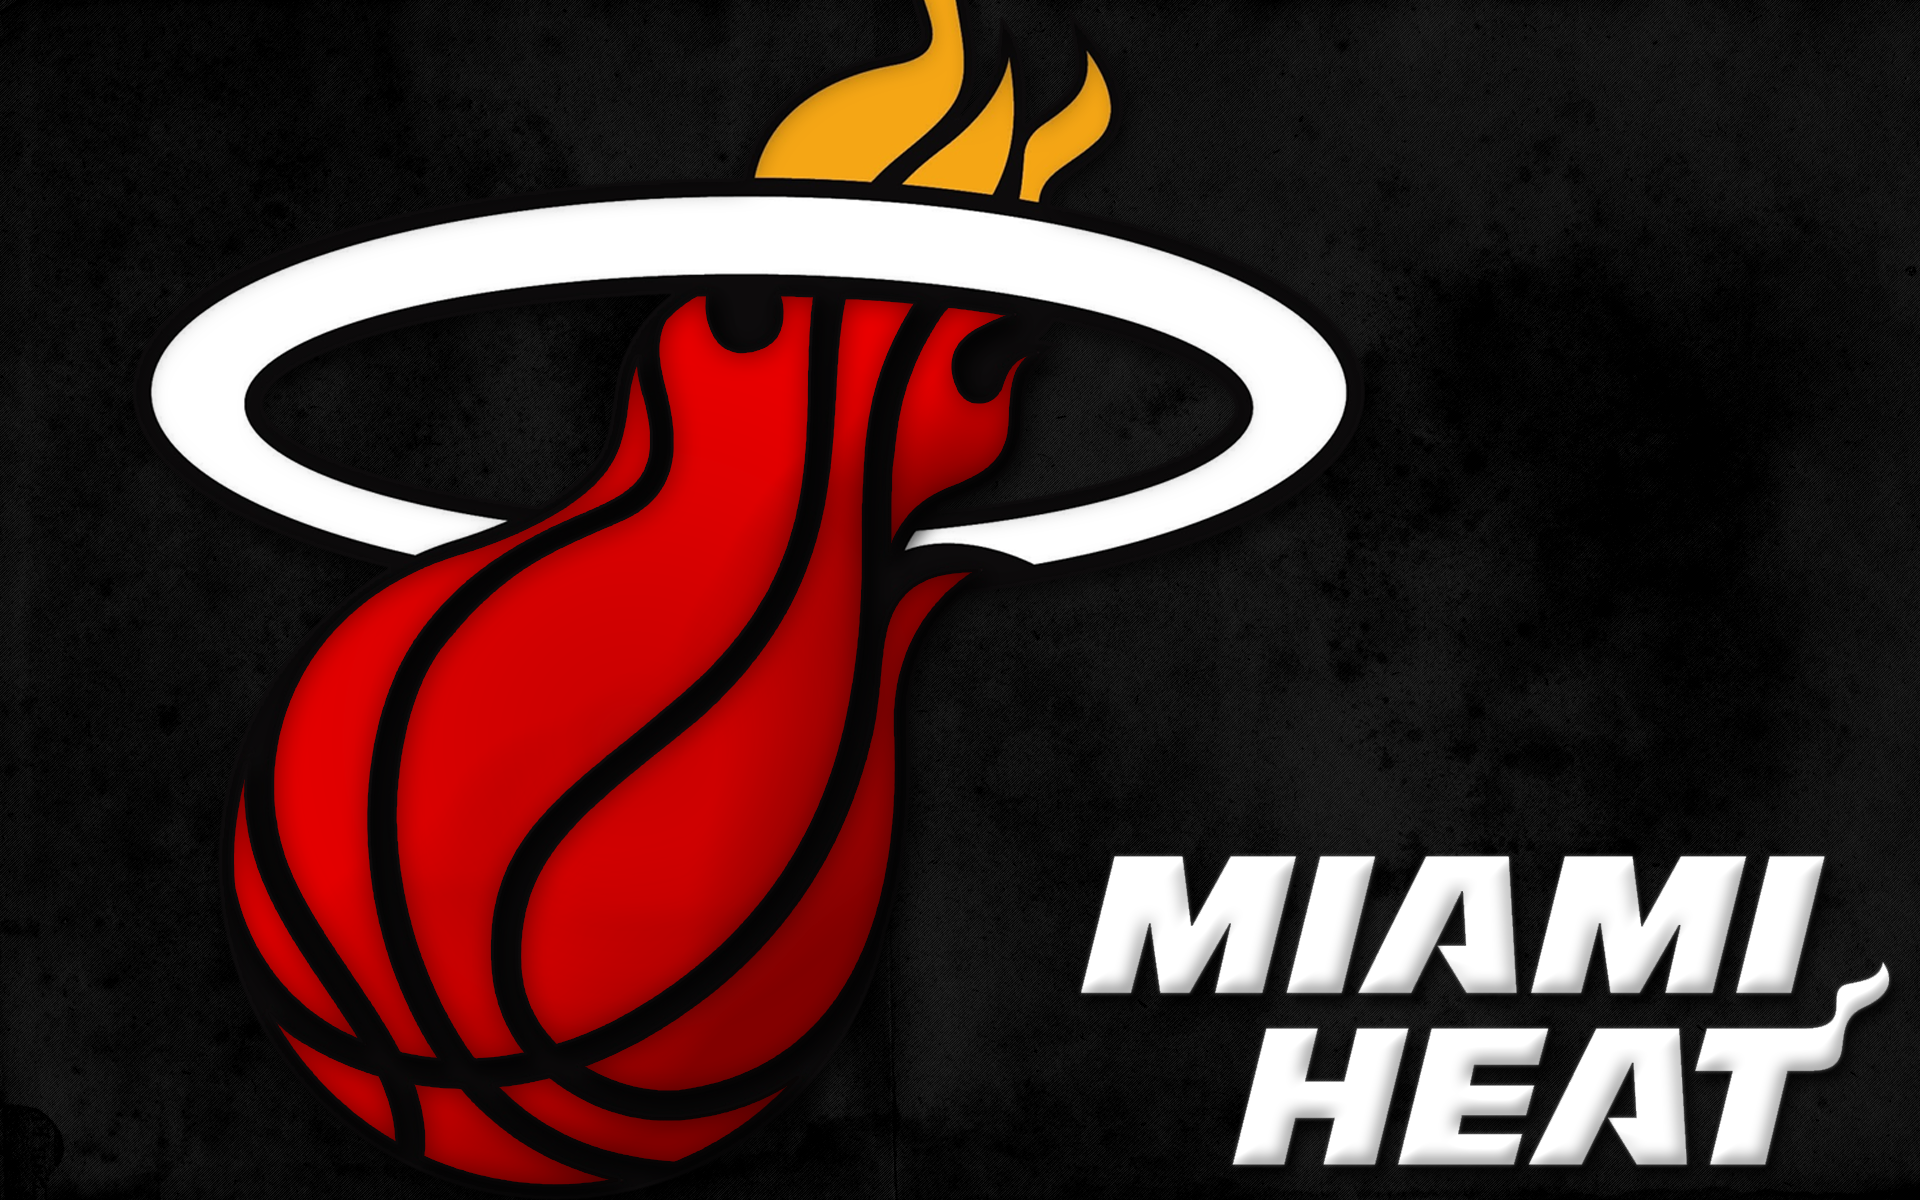 Miami Heat Basketball NBA Team Black Wallpapers HD Widescreen Desktop Background